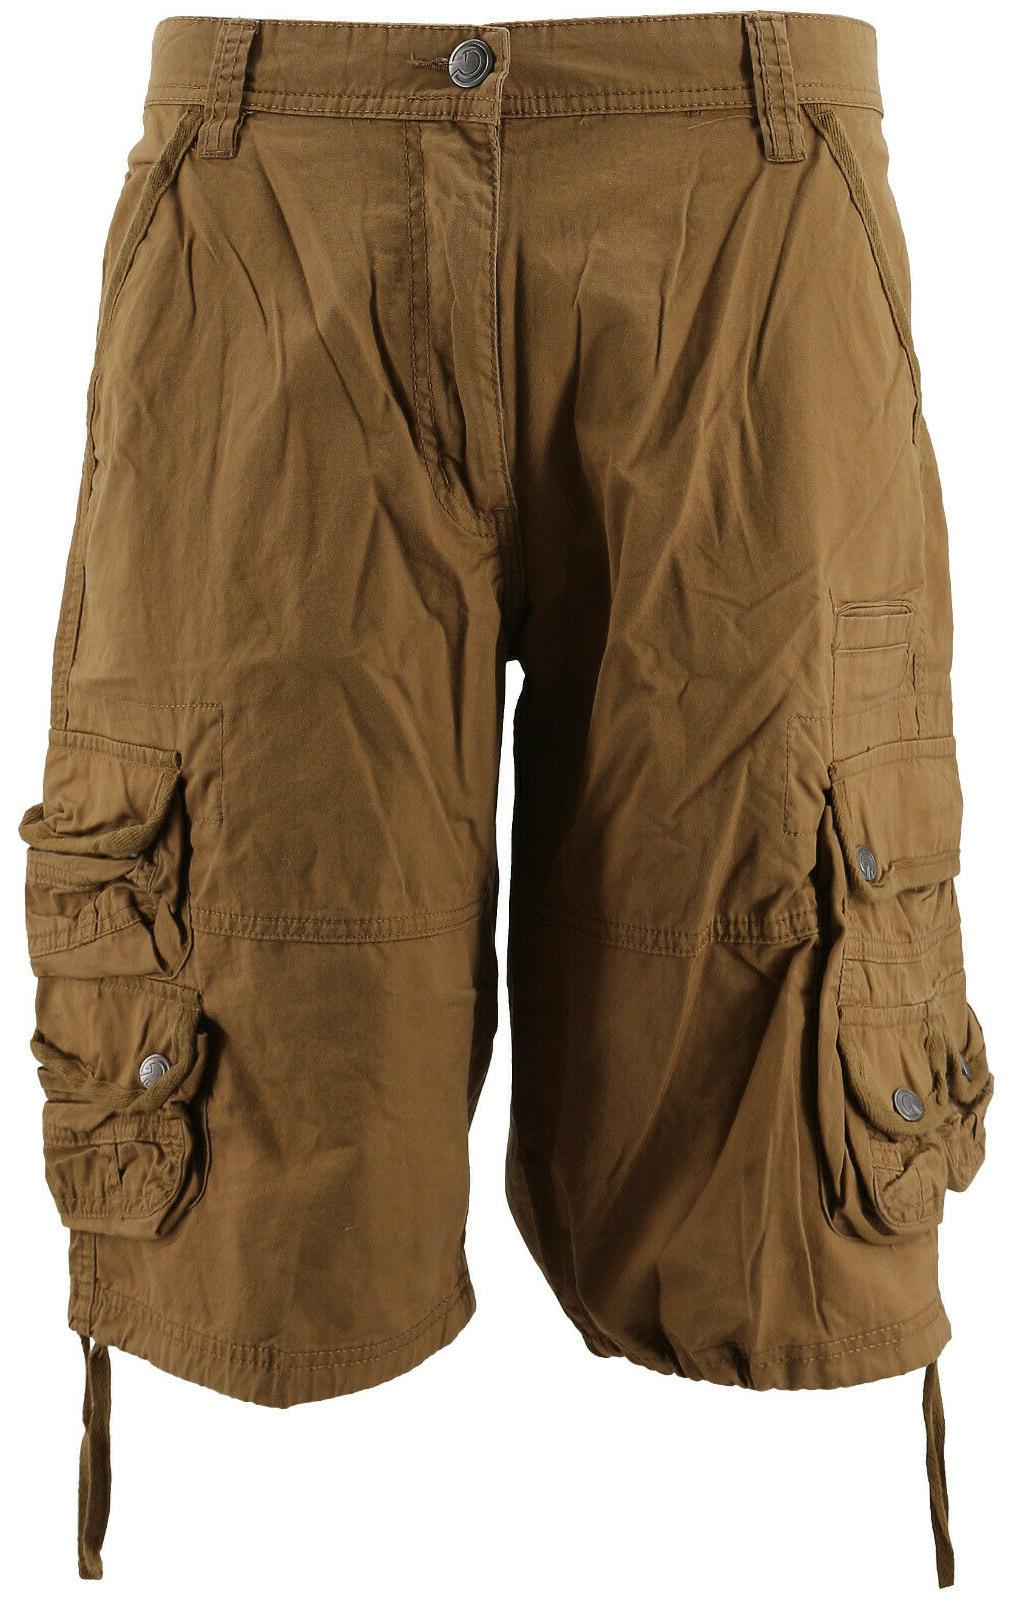 MSLM Relaxed Pocket Shorts